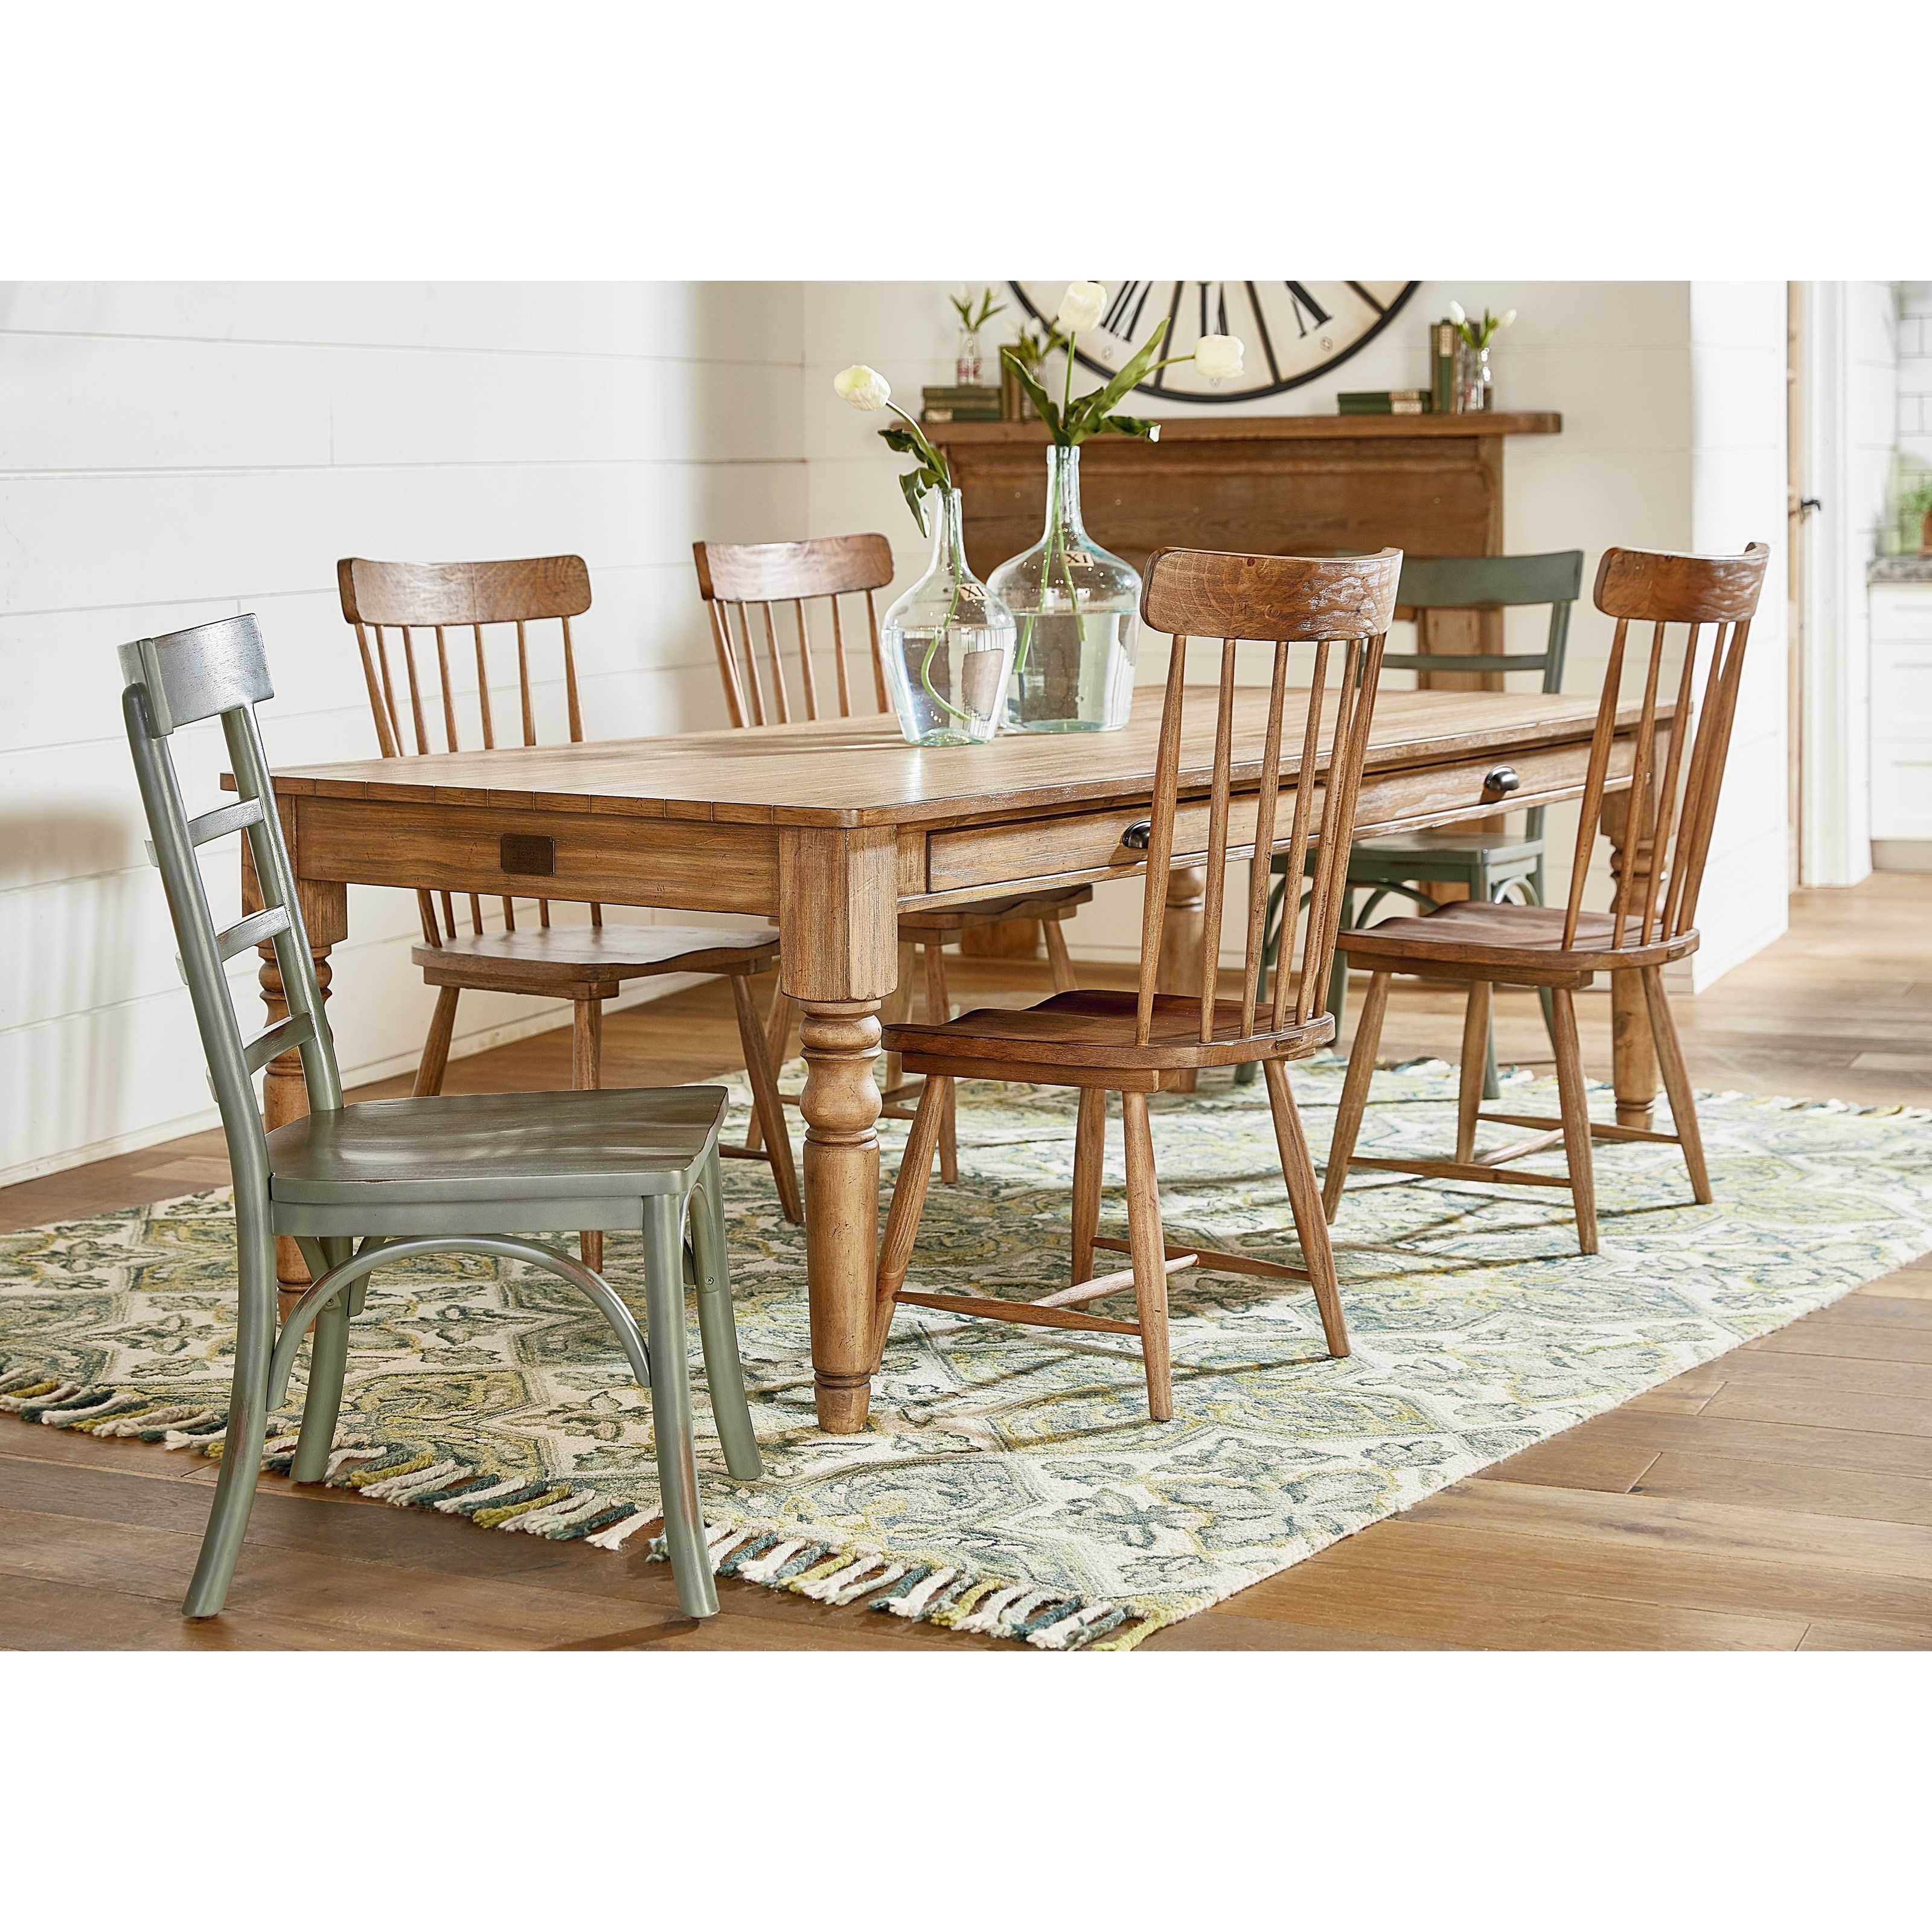 joanna dining table and chairs gallery